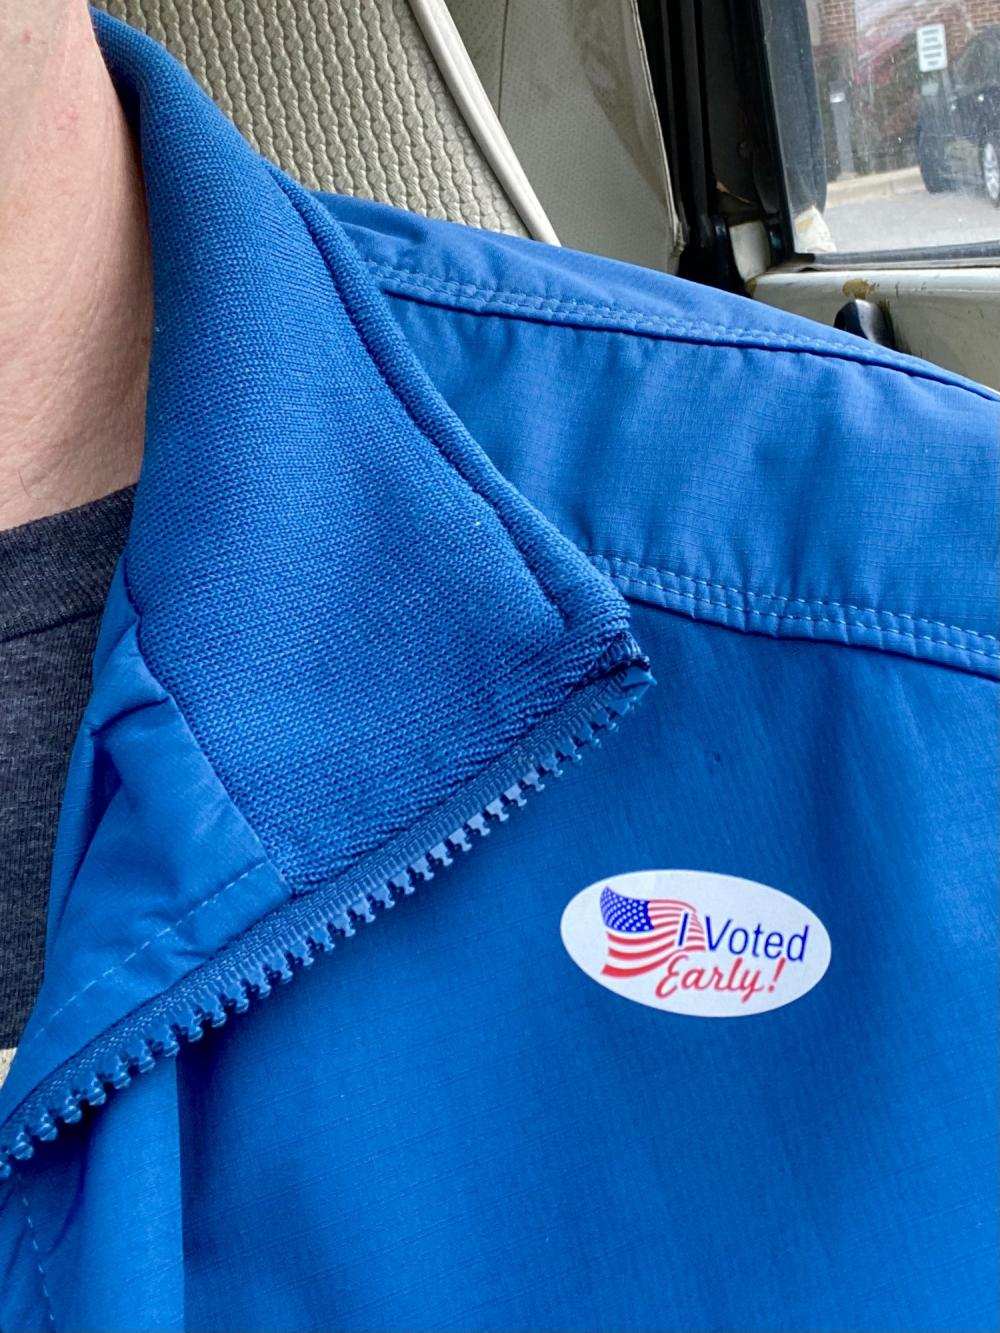 I Voted Early in 2020